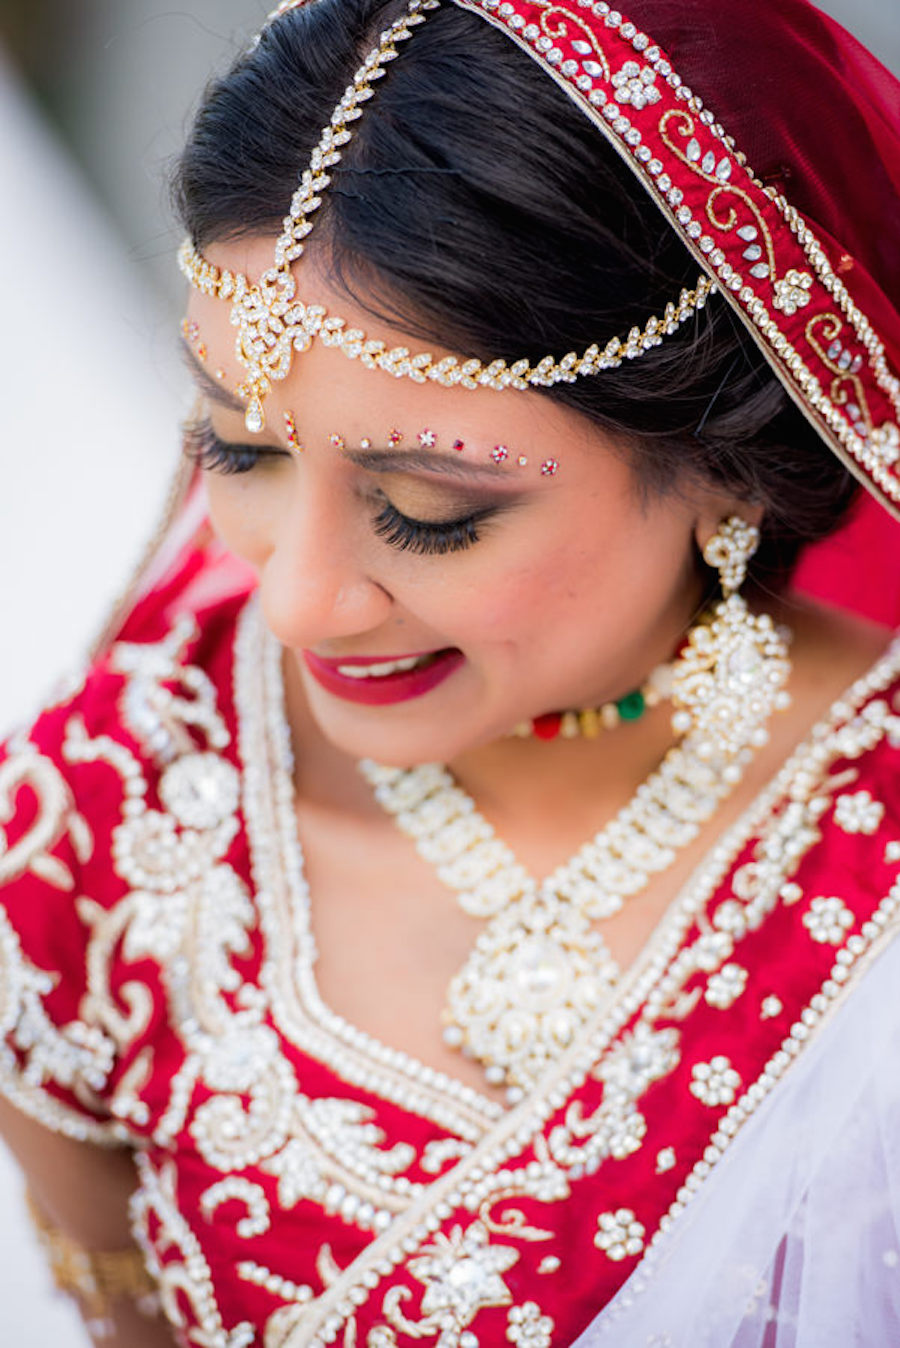 Indian Bridal Wedding Portrait in Red, Gold and White Sari   Tampa Bay Wedding Hair and Makeup Artist Michele Renee The Studio